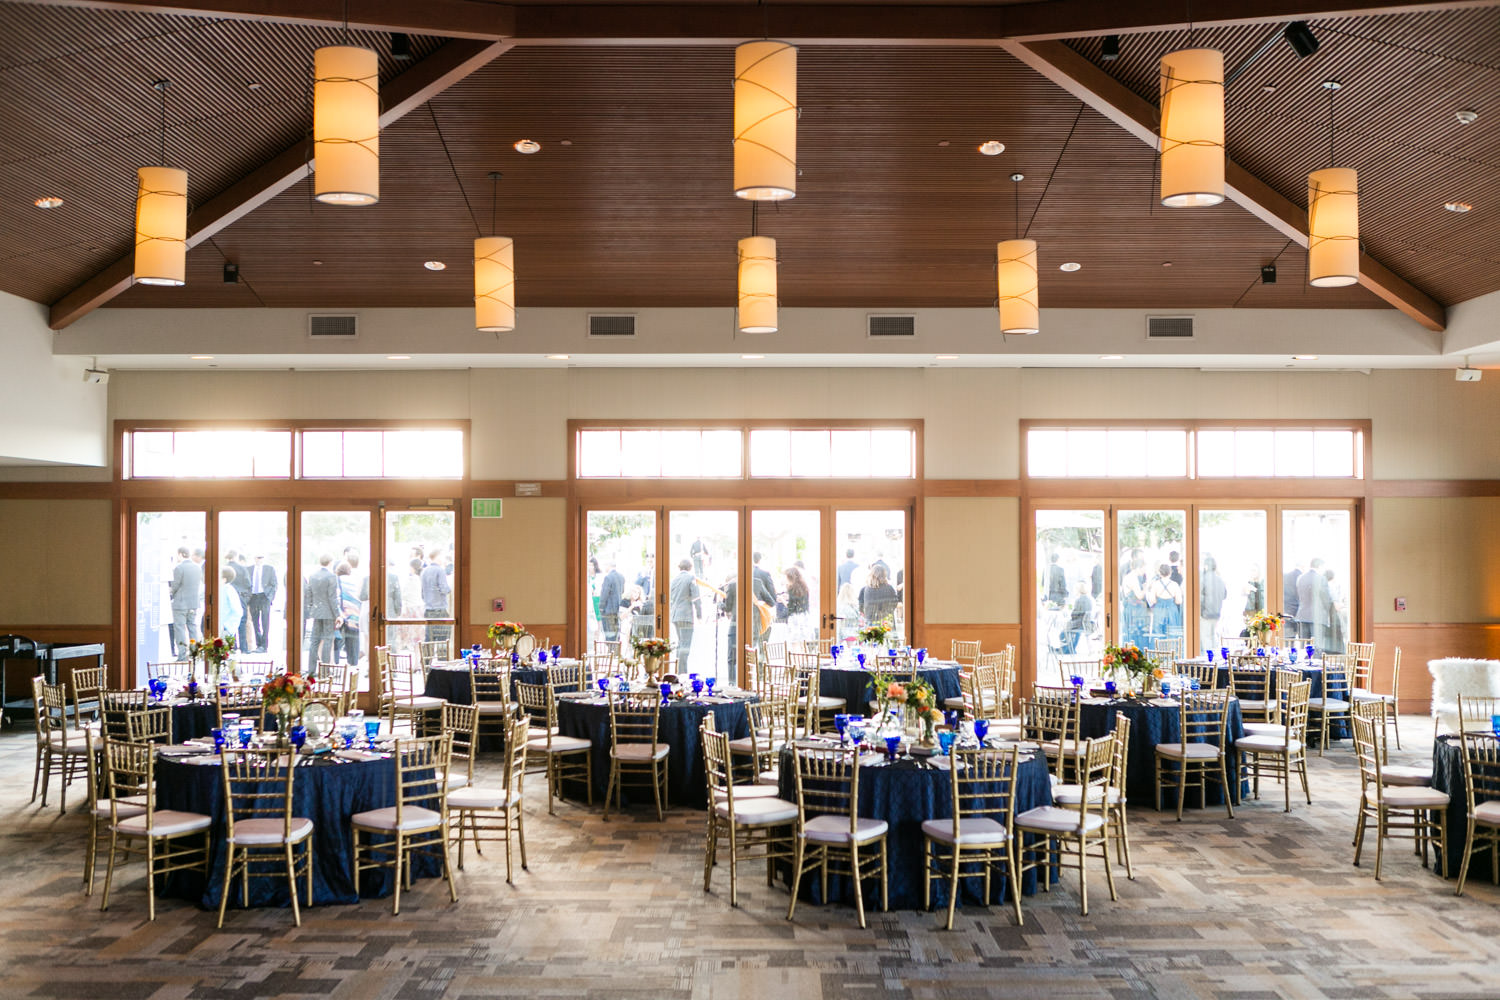 Coronado Community Center Wedding Reception By Coastyle Events Sophisticated Sports Vintage Themed Decor With Blue